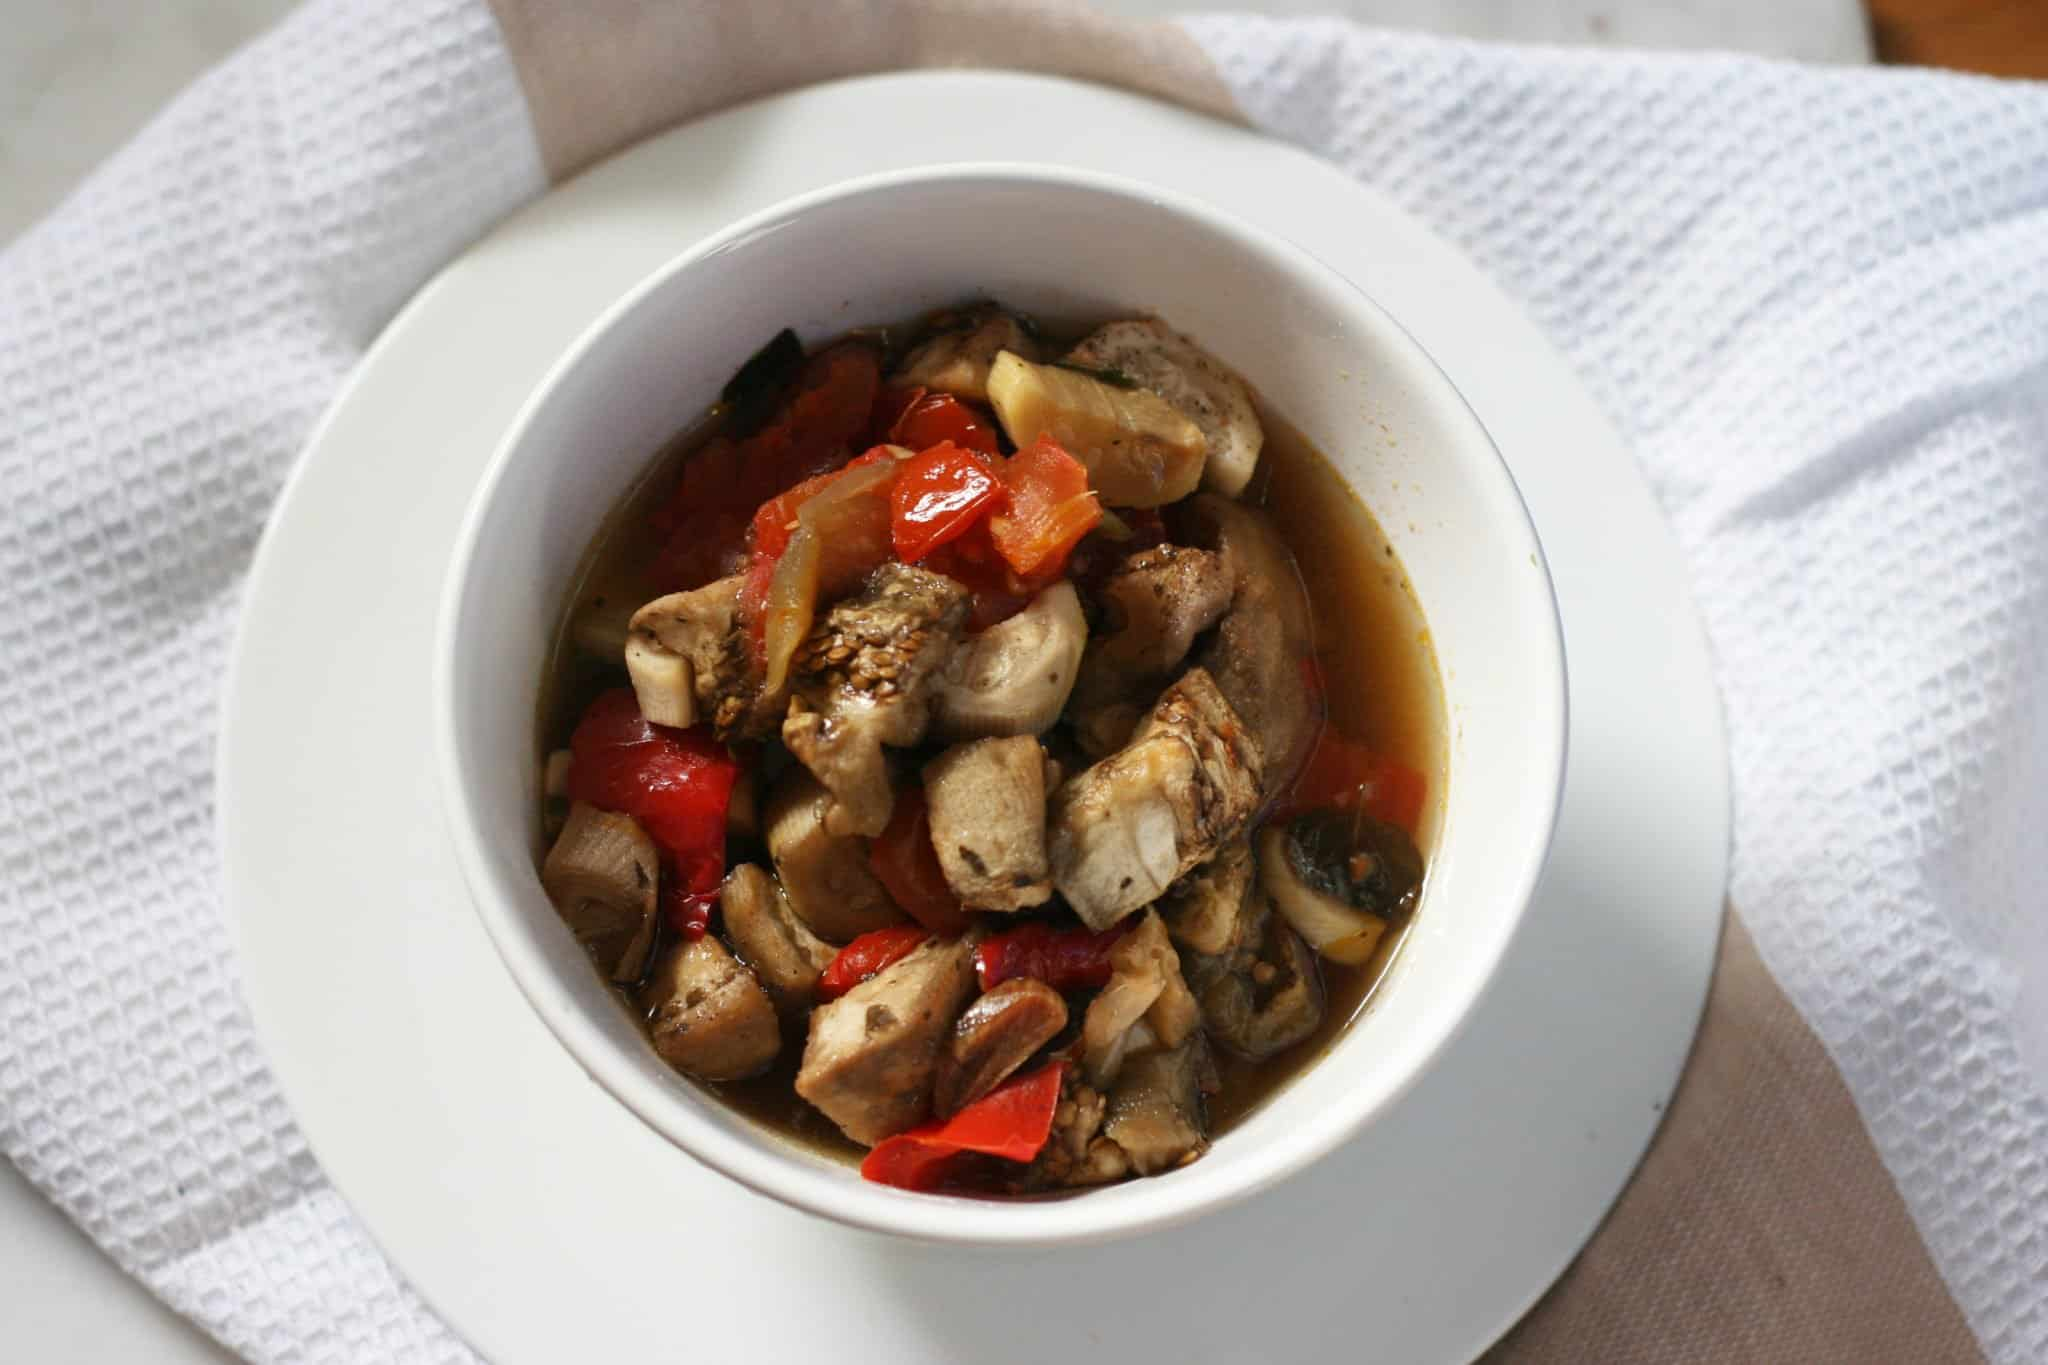 Slow cooker Mediterranean veggies served together in a white ceramic bowl on a large white linen